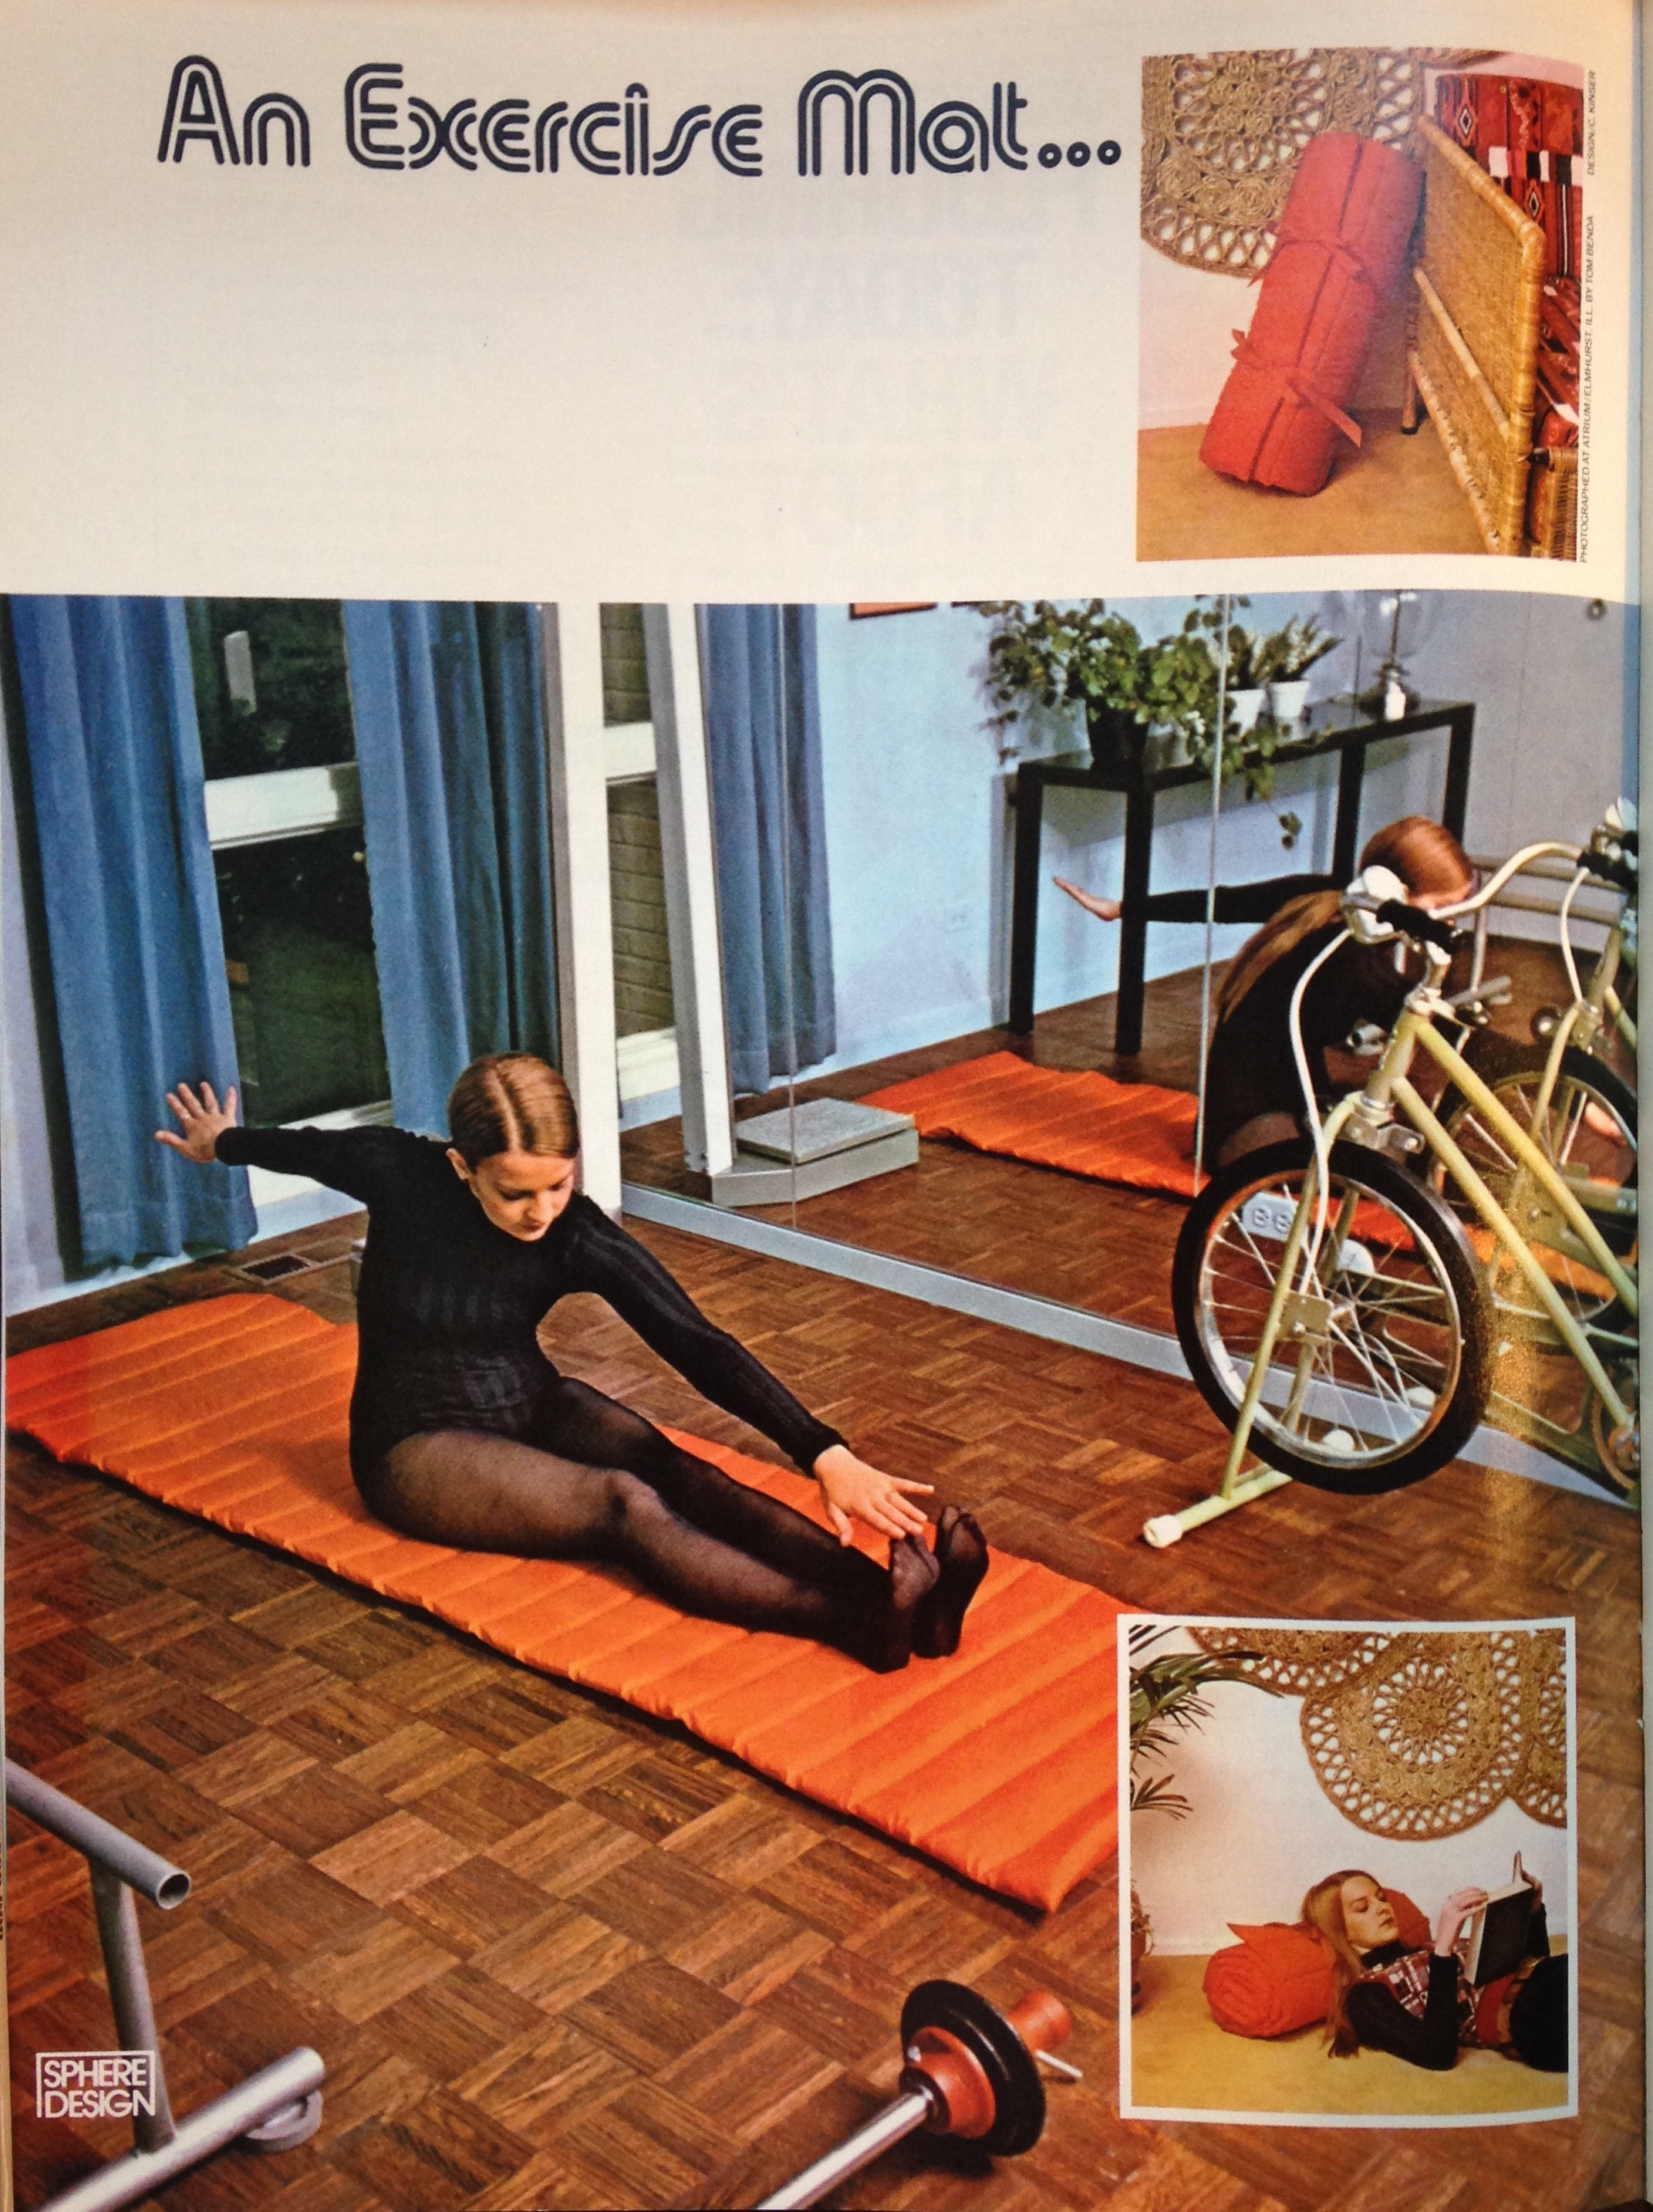 Apparently women used to exercise while wearing pantyhose? Pictorial from the January 1973 issue of  Sphere.